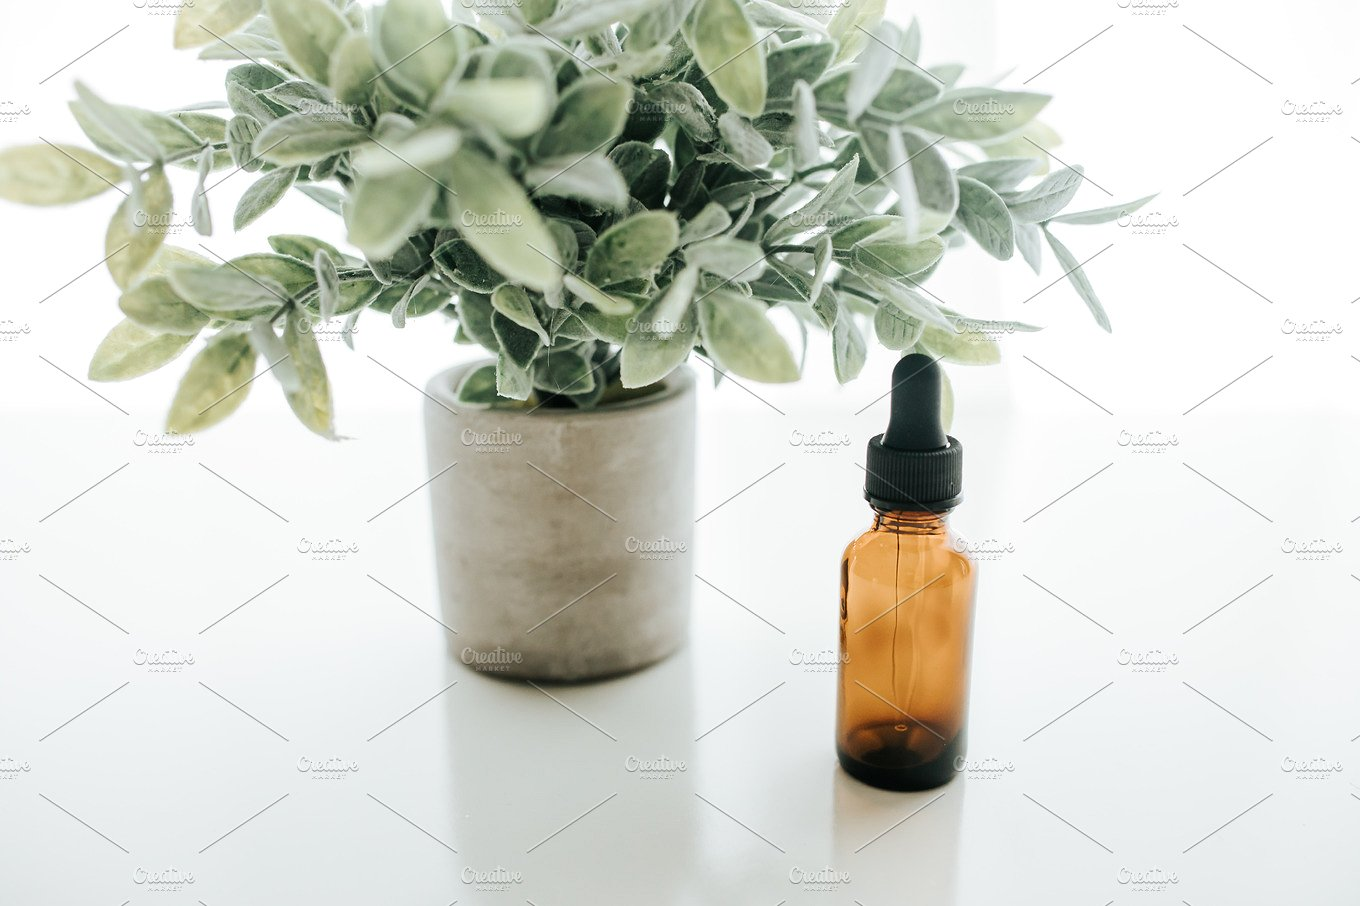 精油库存照片集合 Essential Oils Stock Photo Bundle插图(5)